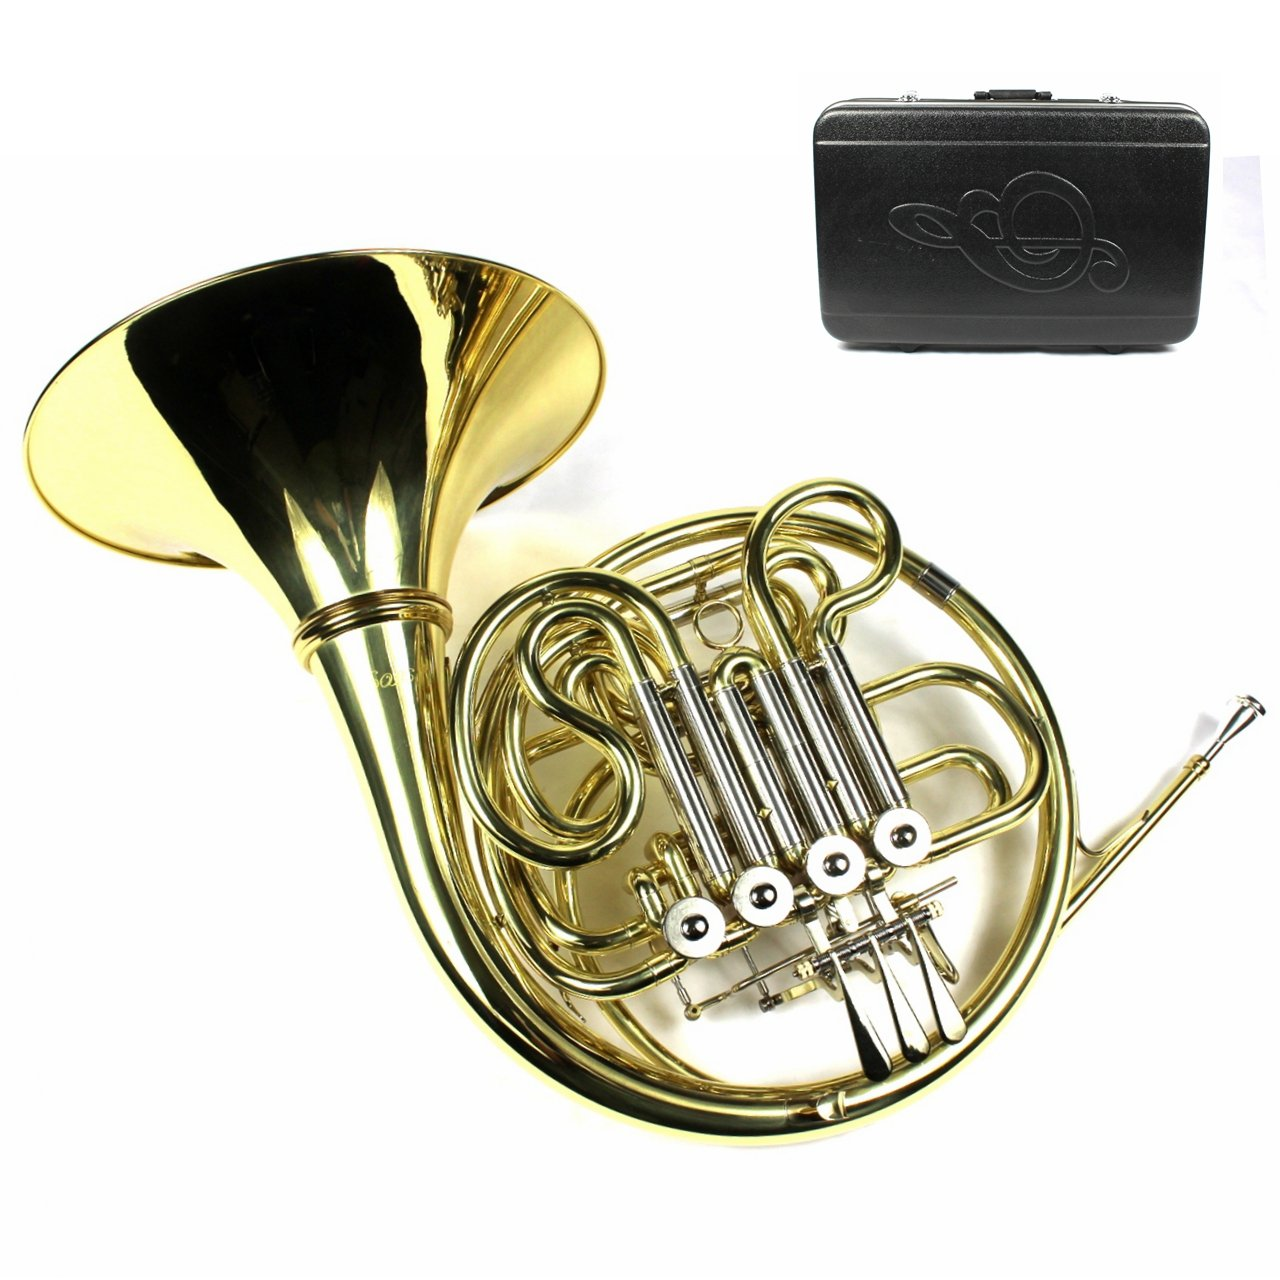 Monel Rotors Bb/F 4 Keys Double French Horn w/Case & Mouthpiece-Gold Lacquer Finish